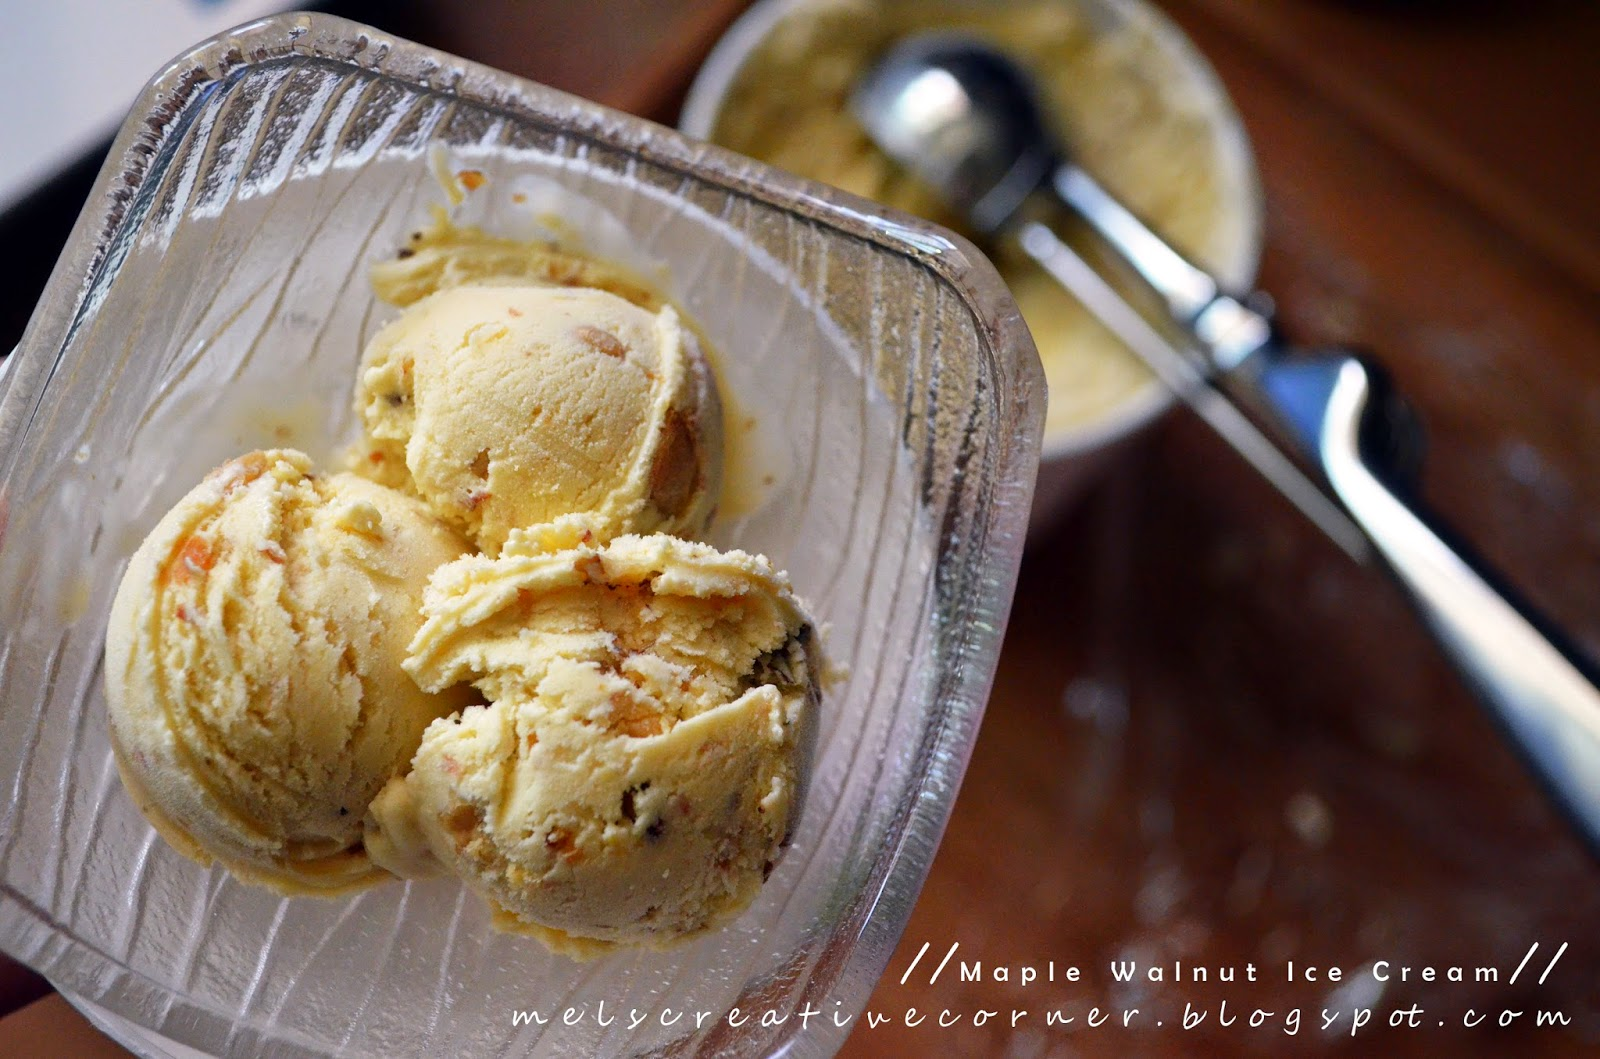 Mel's Creative Corner: Maple Walnut Ice Cream!